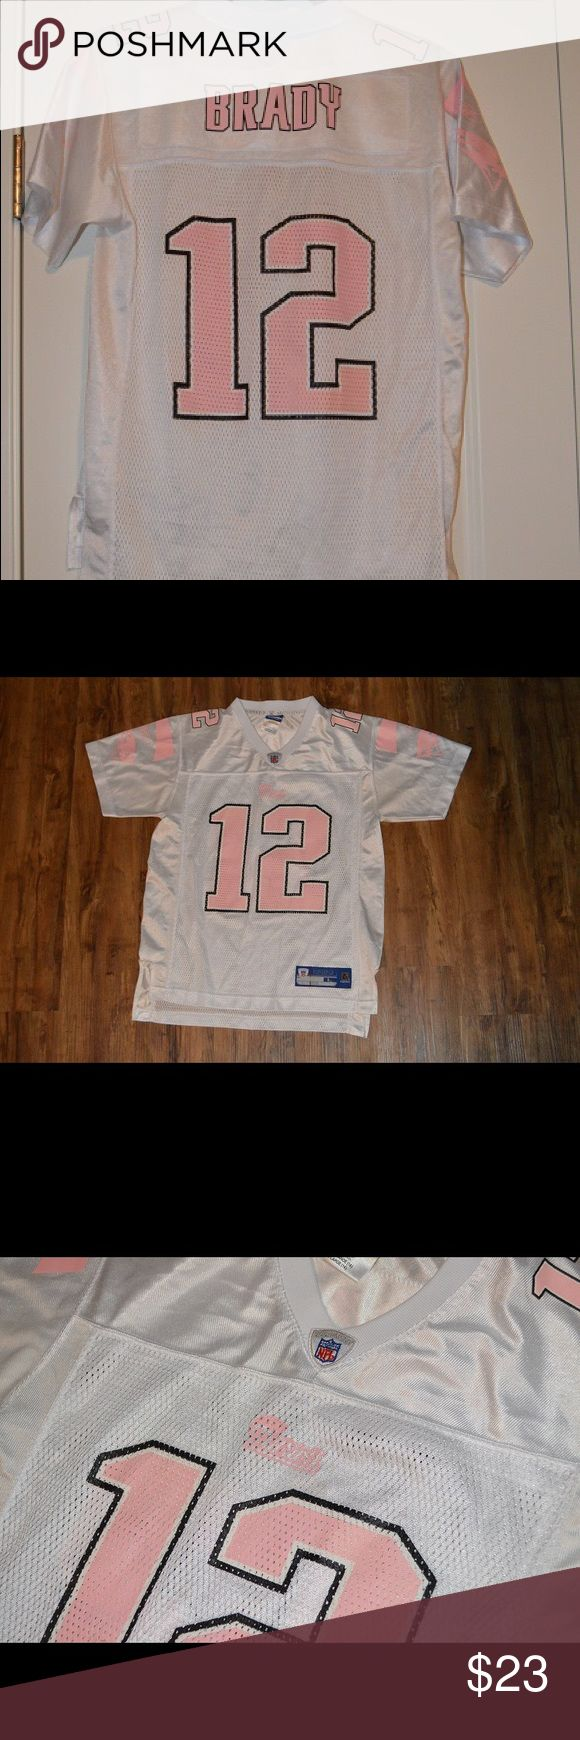 Tom Brady Patriots Jersey Youth (L) Size L (14) Youth Tom Brady Jersey. Fits Youth and Some Women's Sizes (For Reference—I am a Women's Size 4 and This Fit Well). Worn 1-2x, Washed Per Care Instructions. Great Condition!  No Trades Please—Reasonable Offers Considered! Smoke-Free Home. Reebok Shirts & Tops